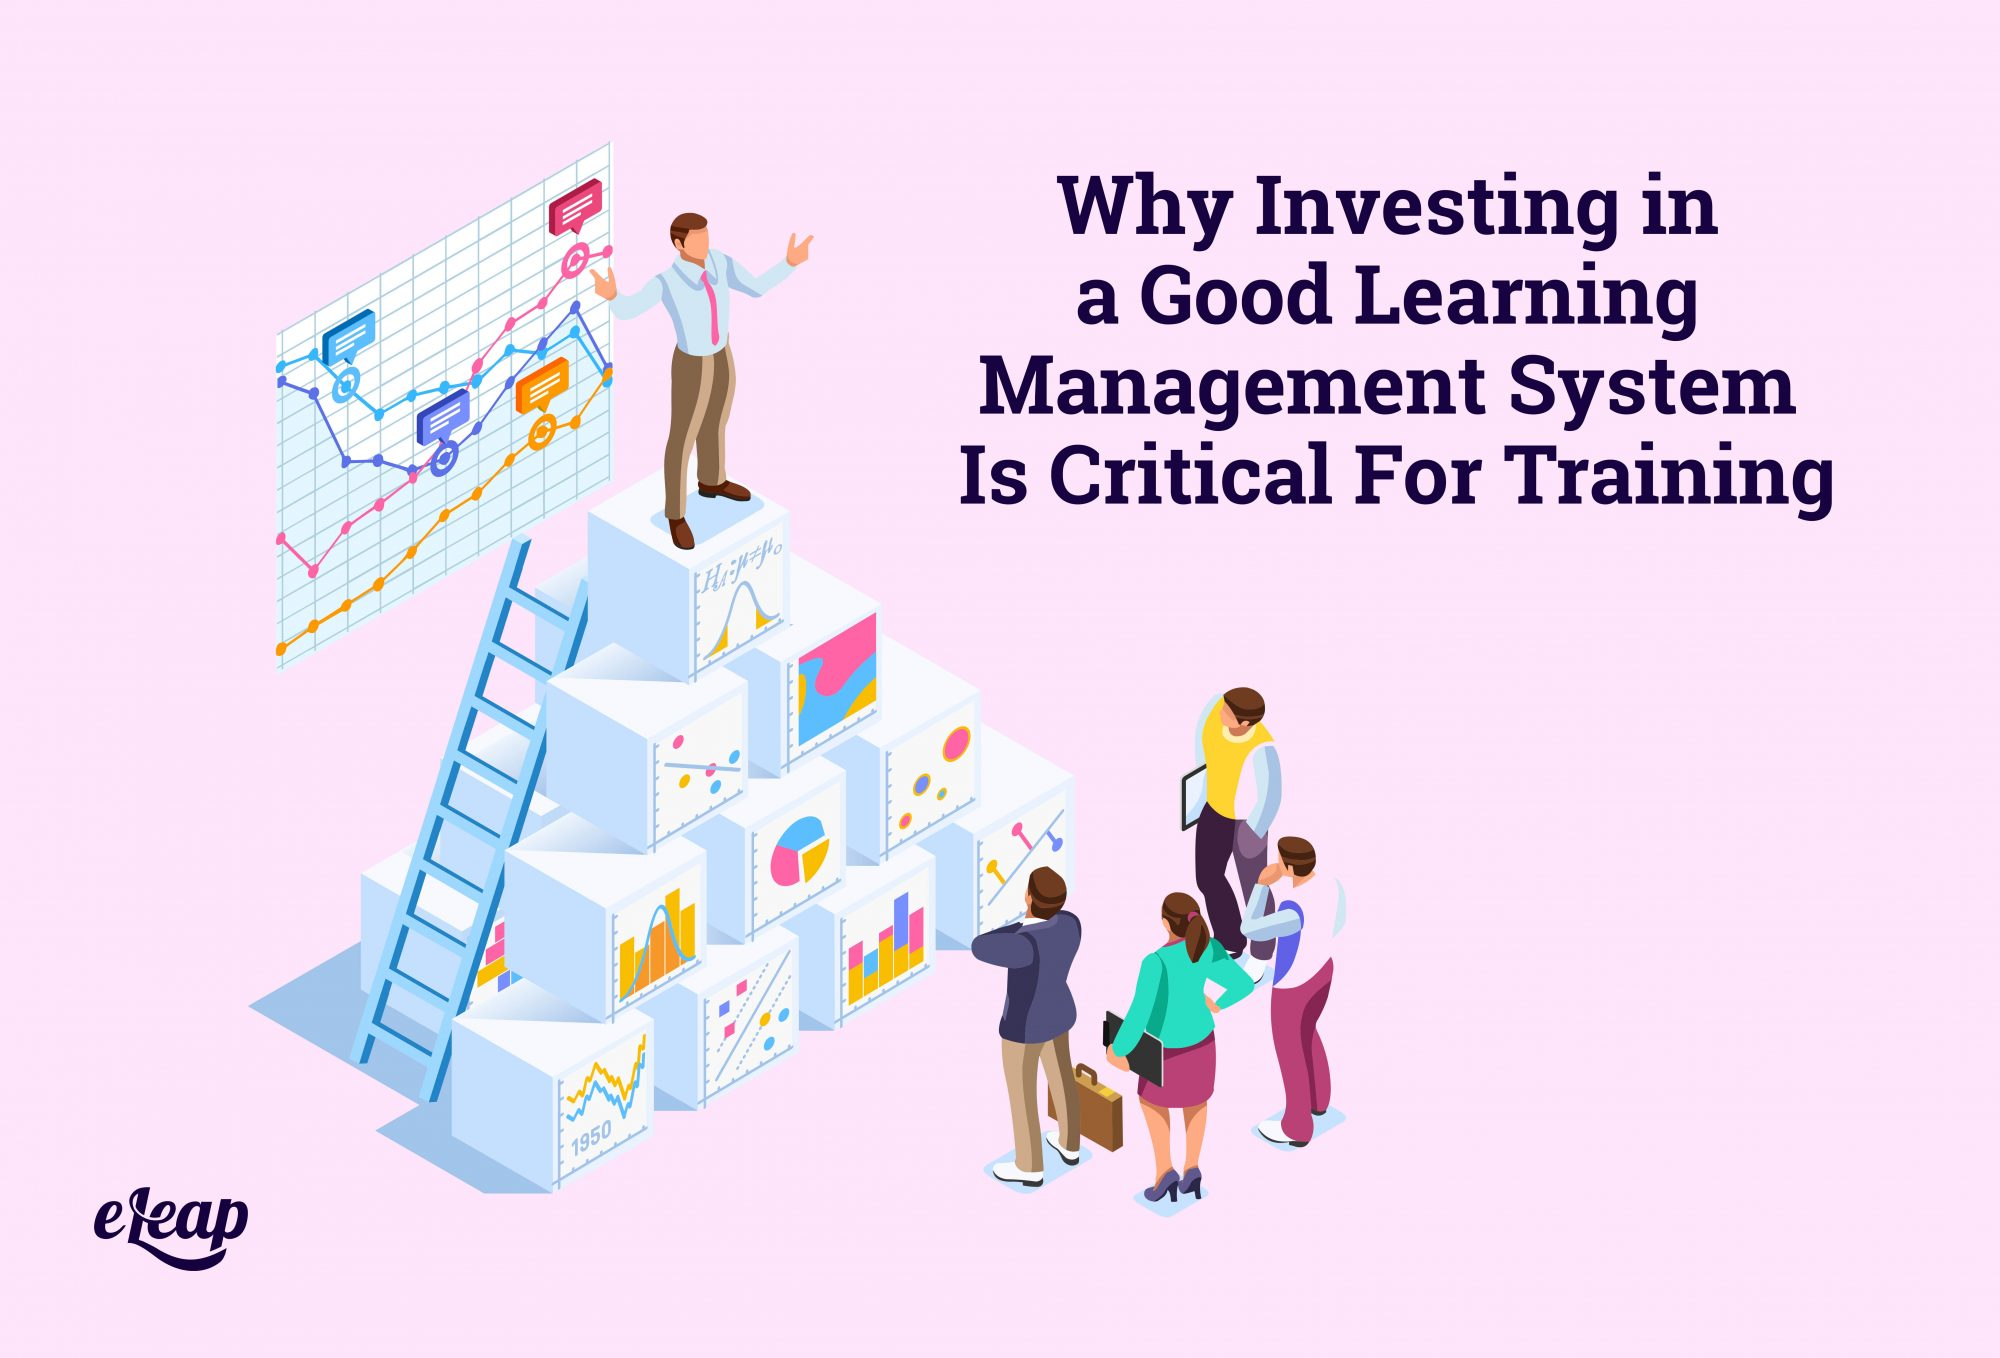 Why Investing in a Good Learning Management System Is Critical For Training